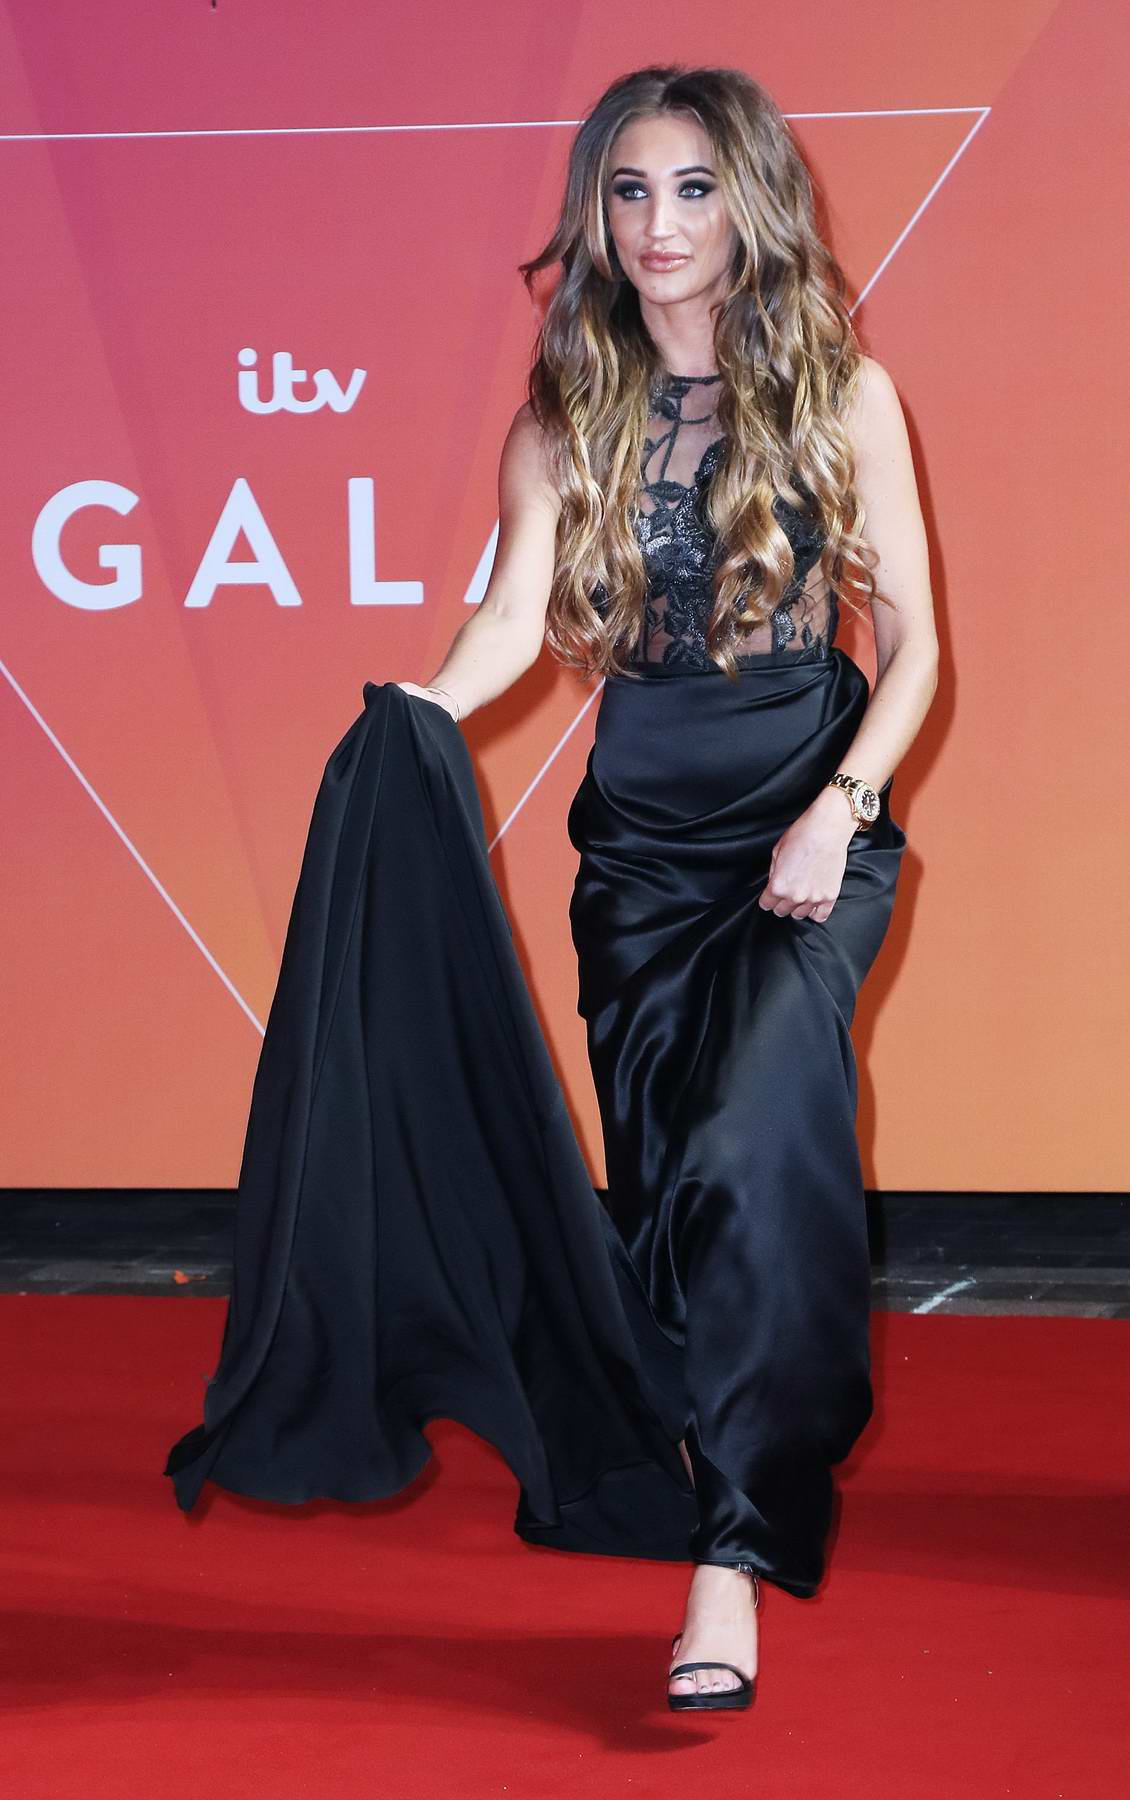 Megan McKenna at the ITV Gala at London Palladium in London, UK